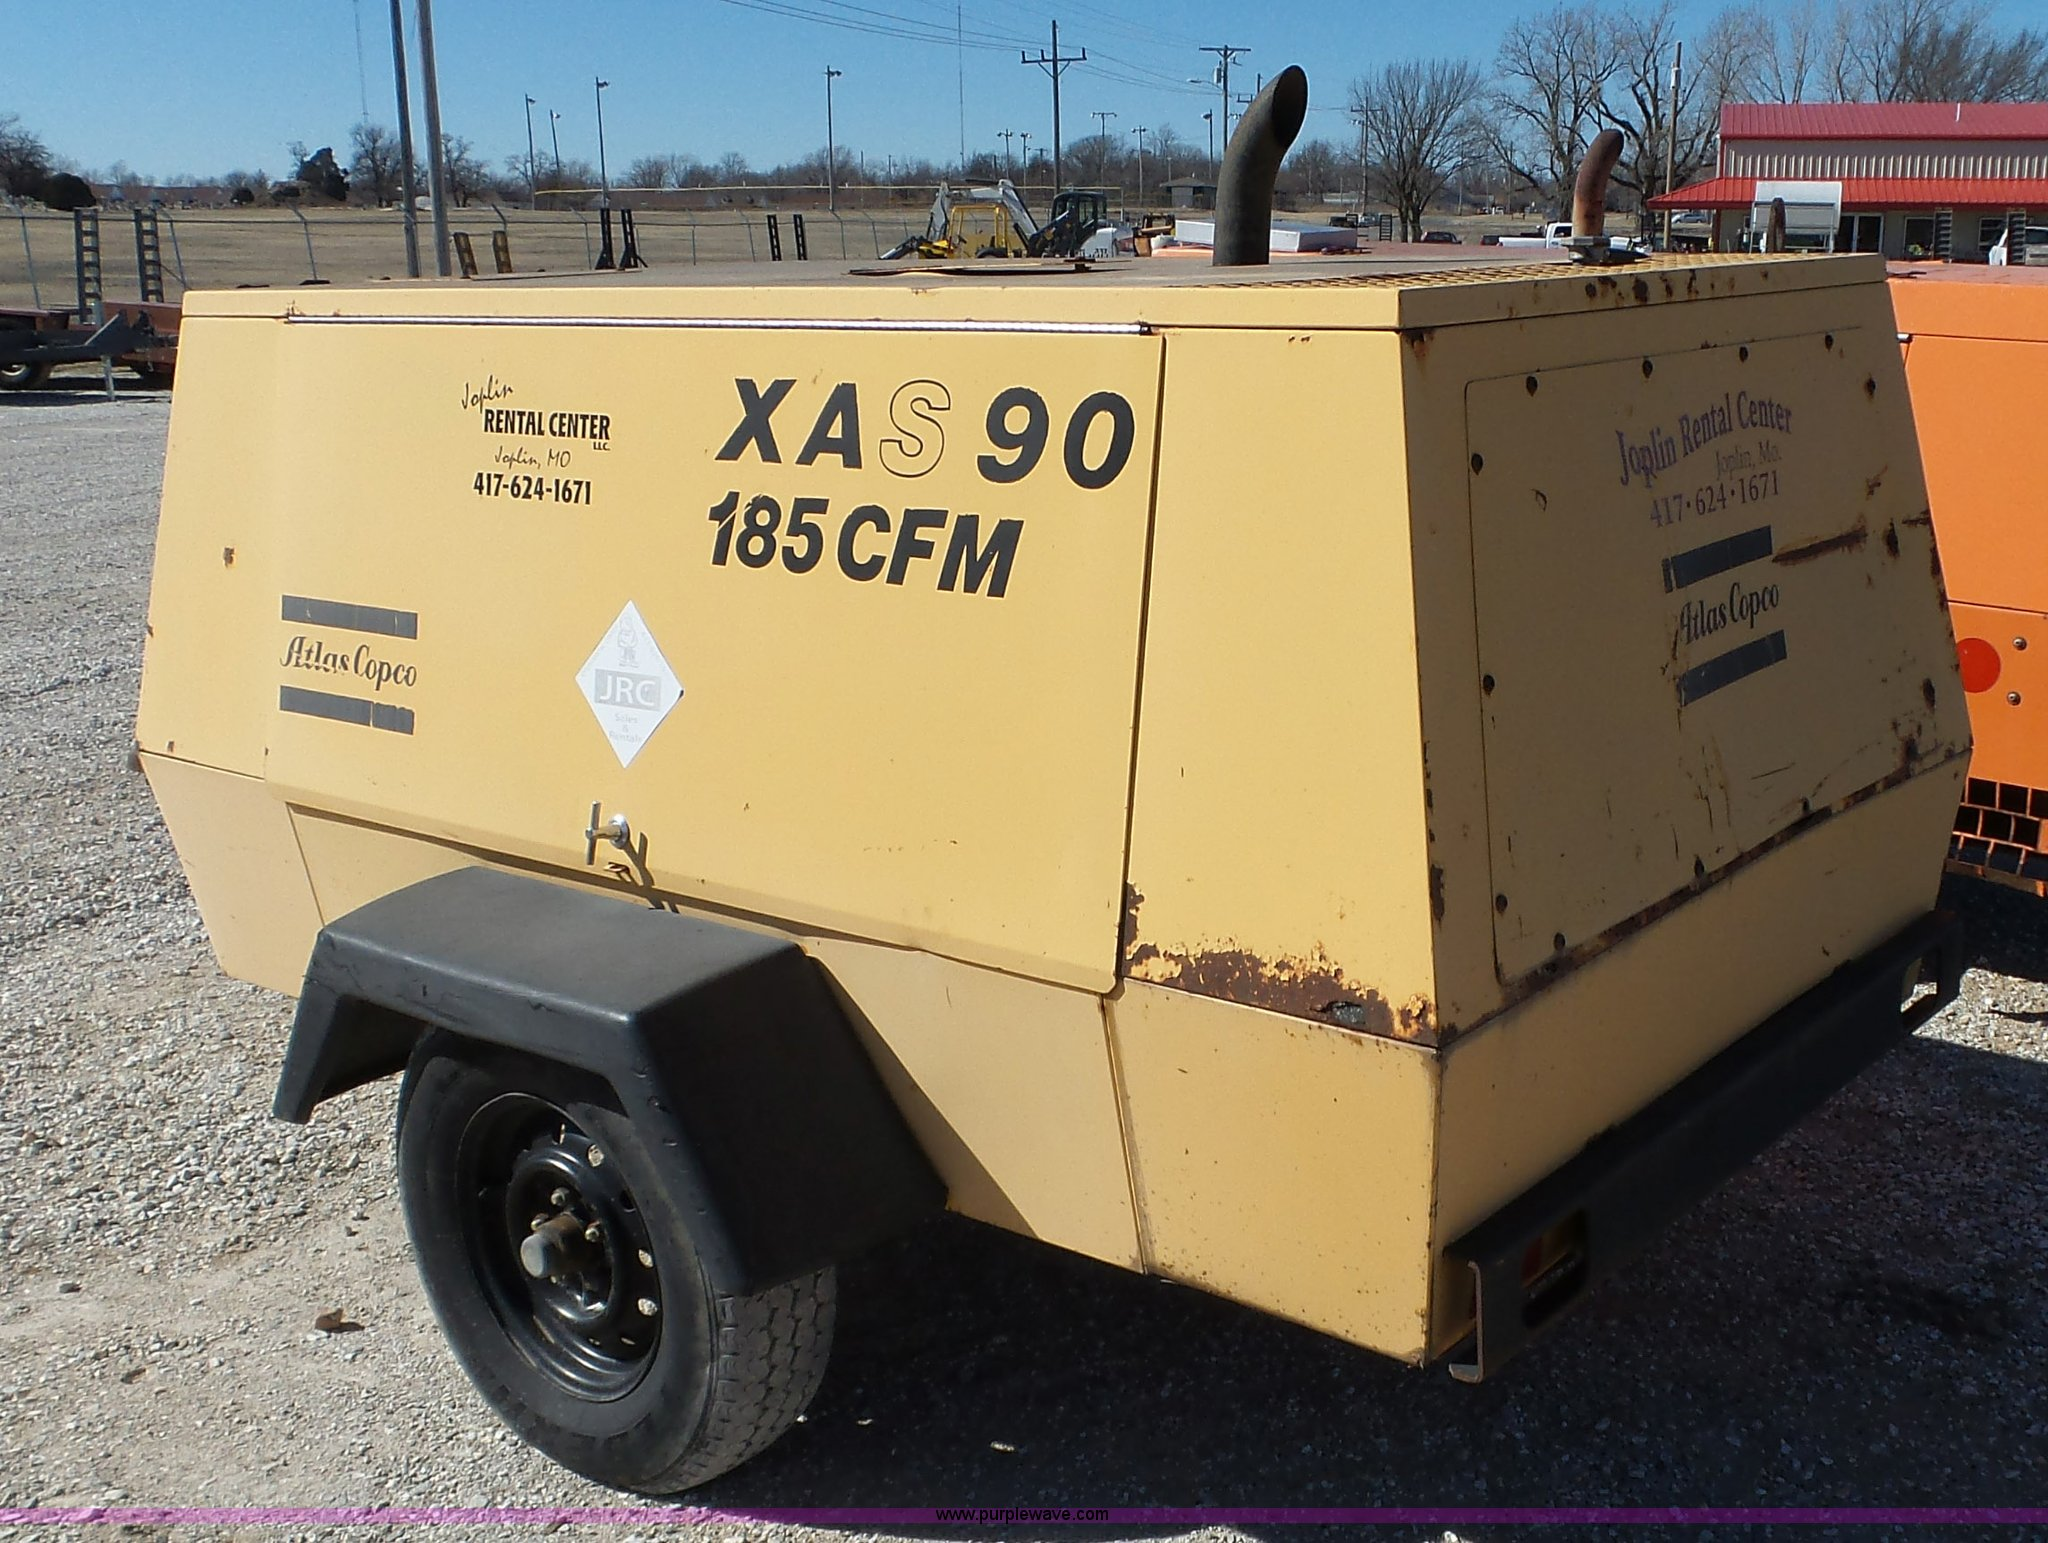 ... Atlas Copco XAS 90 air compressor Full size in new window ...